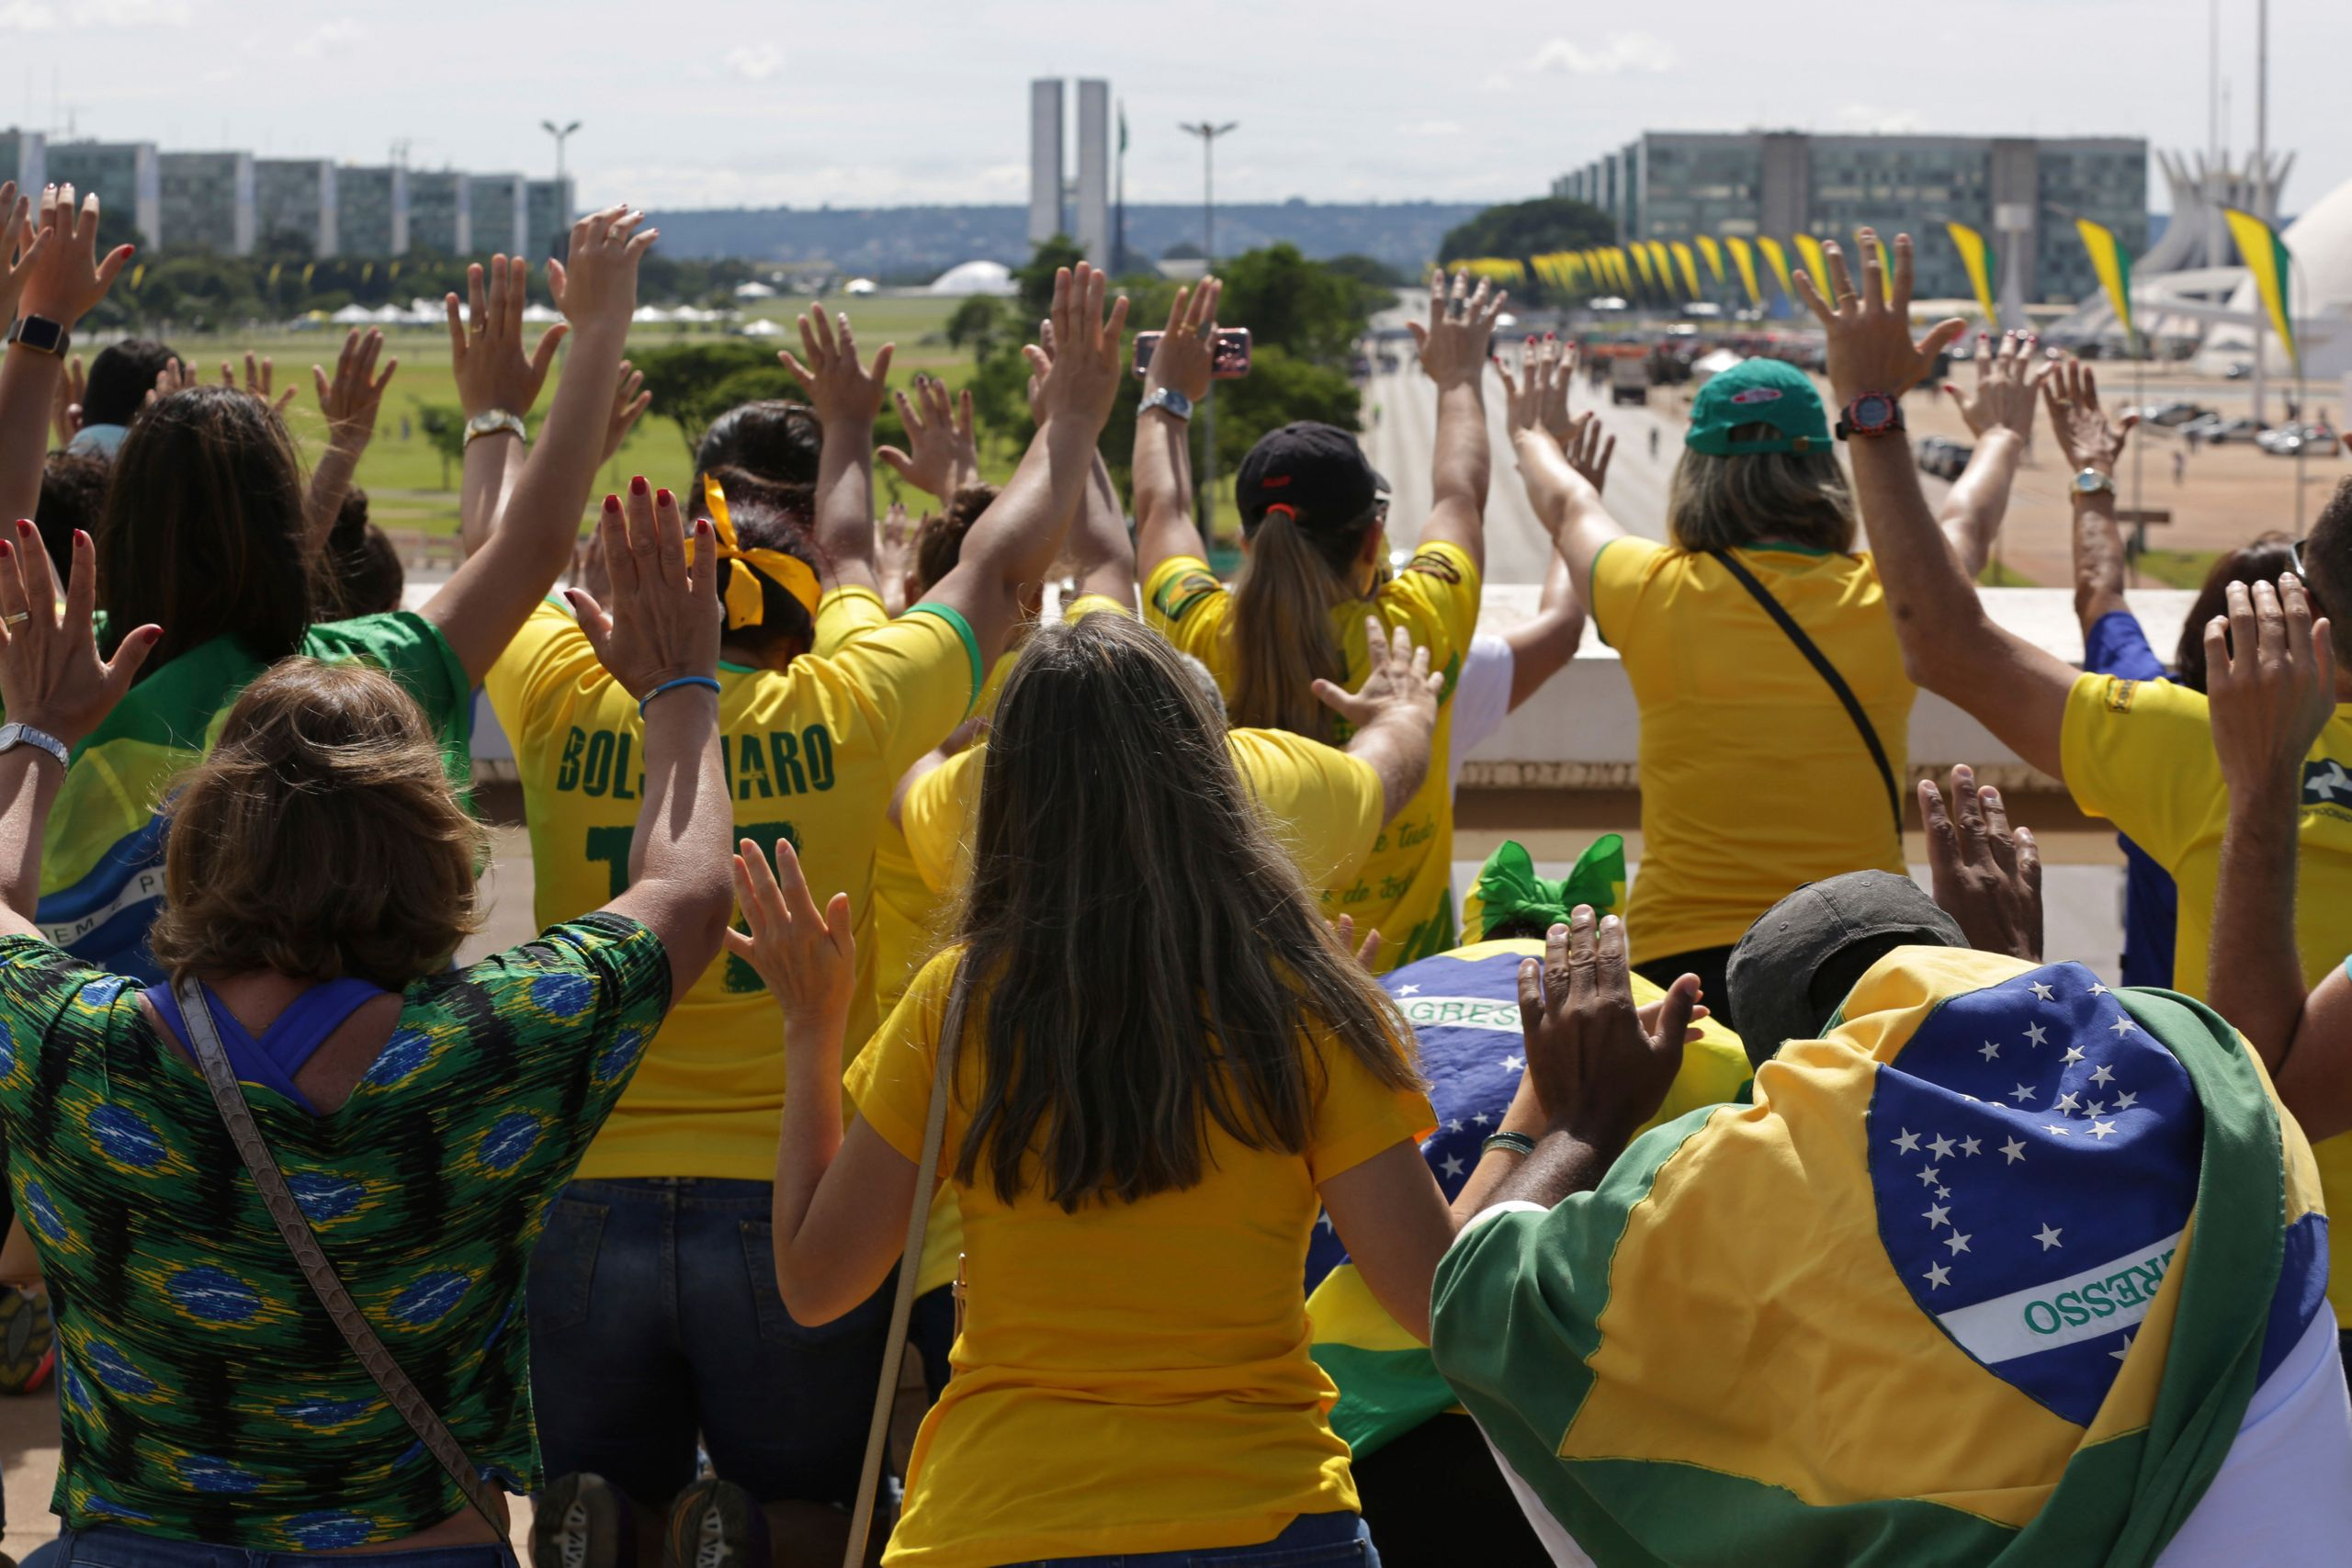 Bolsonaro supporters rally and pray in Brasília ahead of a New Year's Day inauguration ceremony that will make him Bra